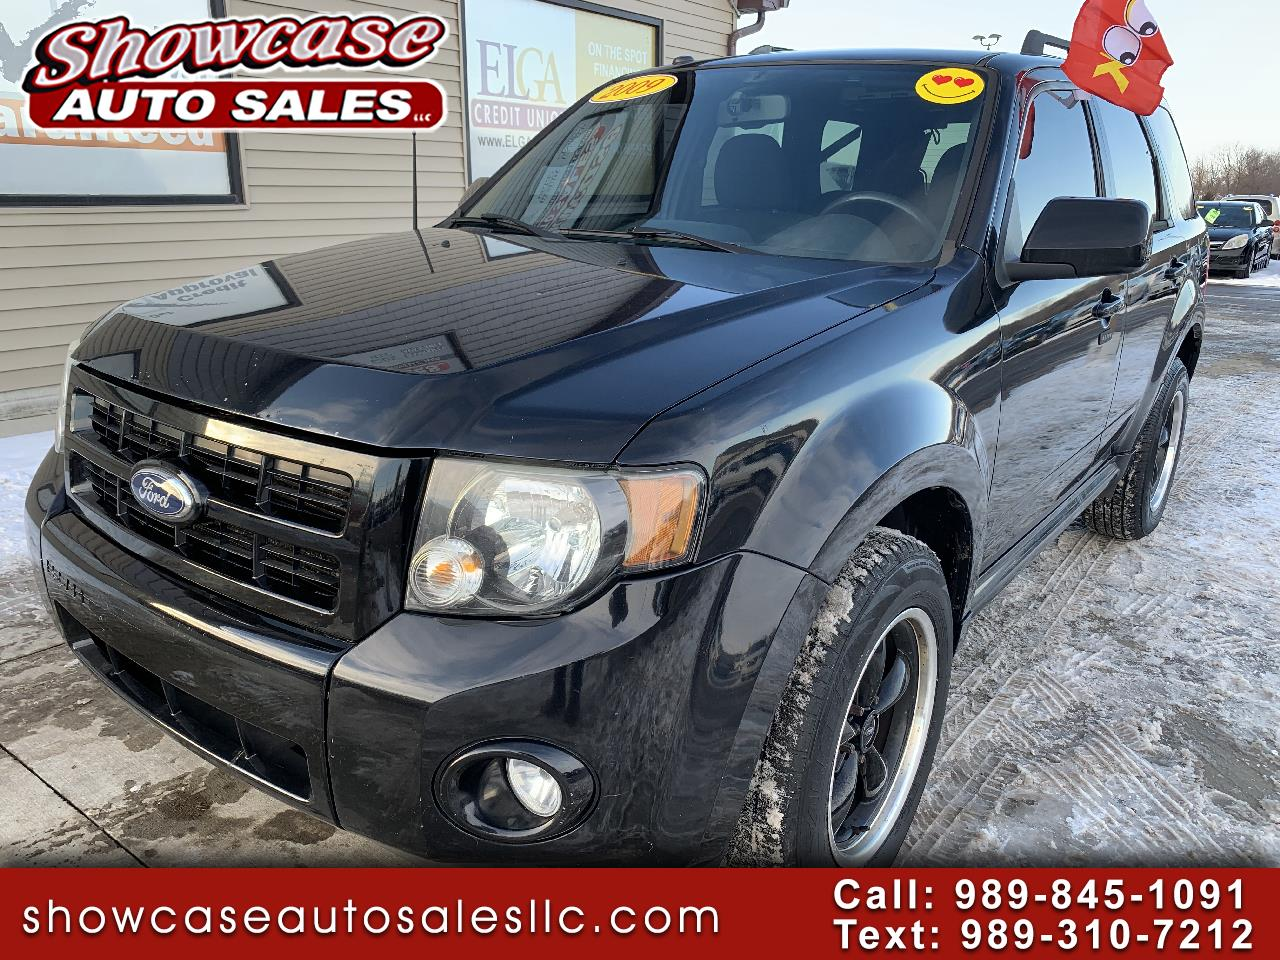 Ford Escape FWD 4dr V6 Auto XLT 2009